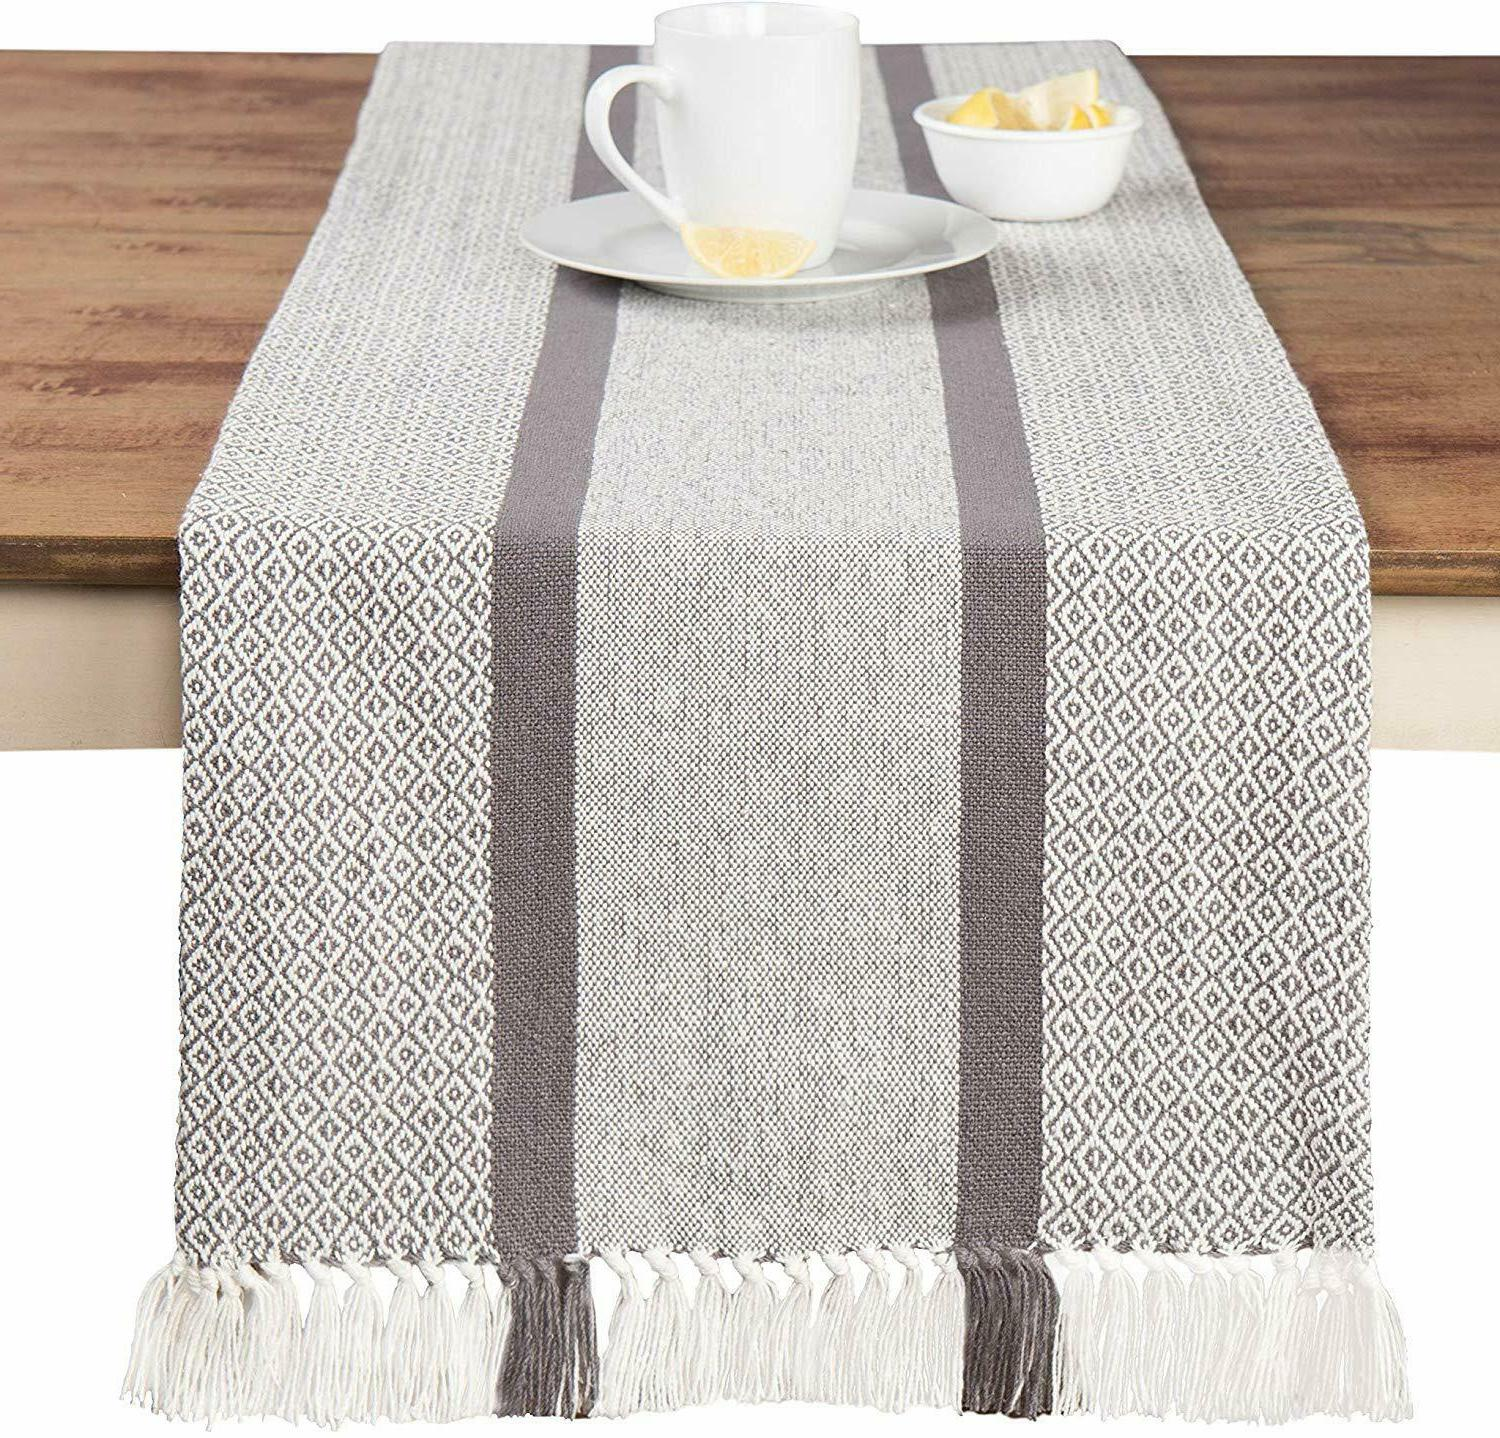 Table Runner Cloth Cover Modern Soft Woven Cotton 14 in x 72